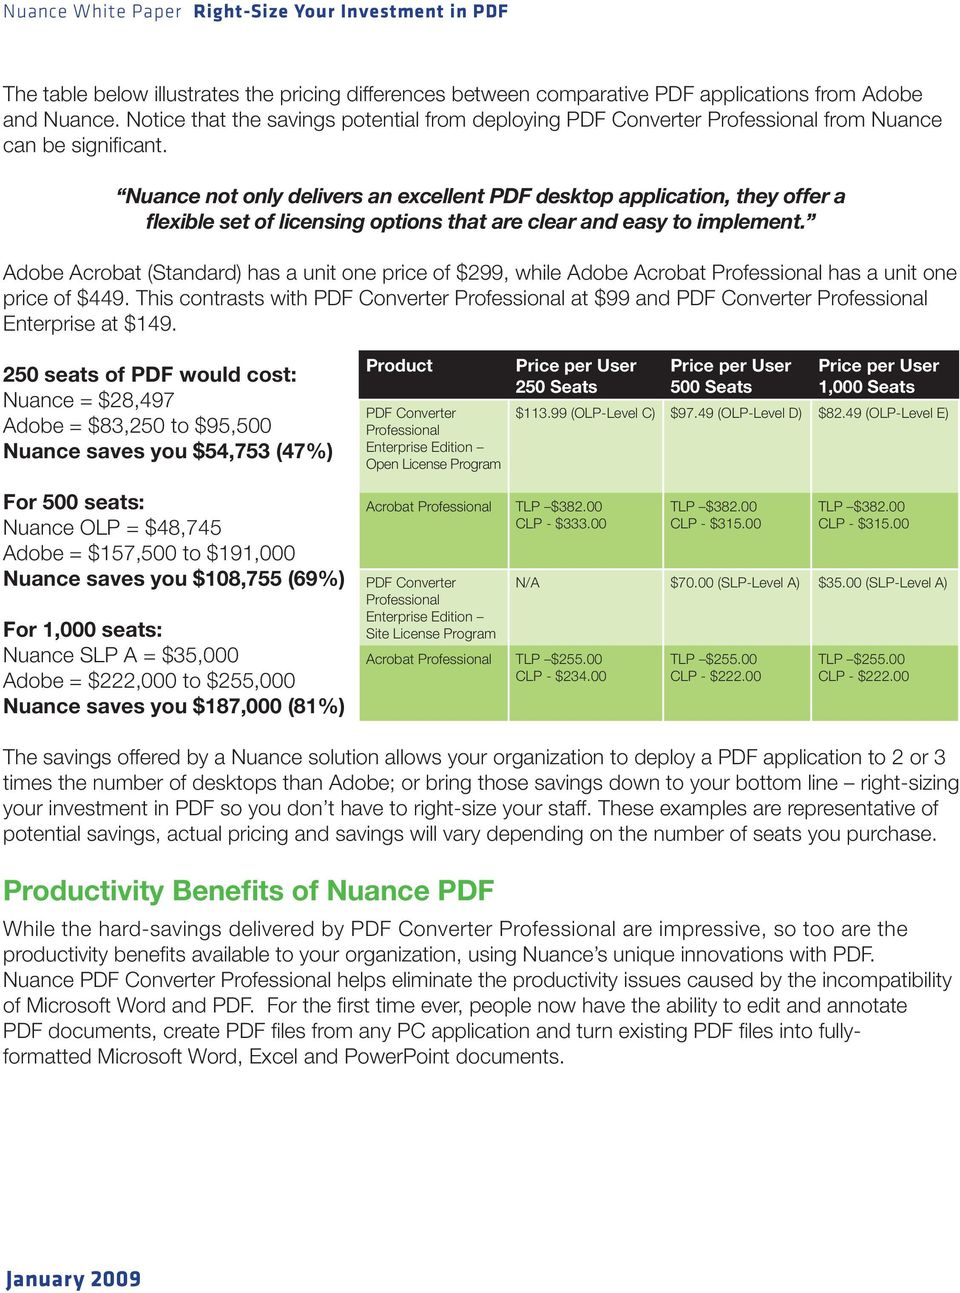 Nuance not only delivers an excellent PDF desktop application, they offer a flexible set of licensing options that are clear and easy to implement.